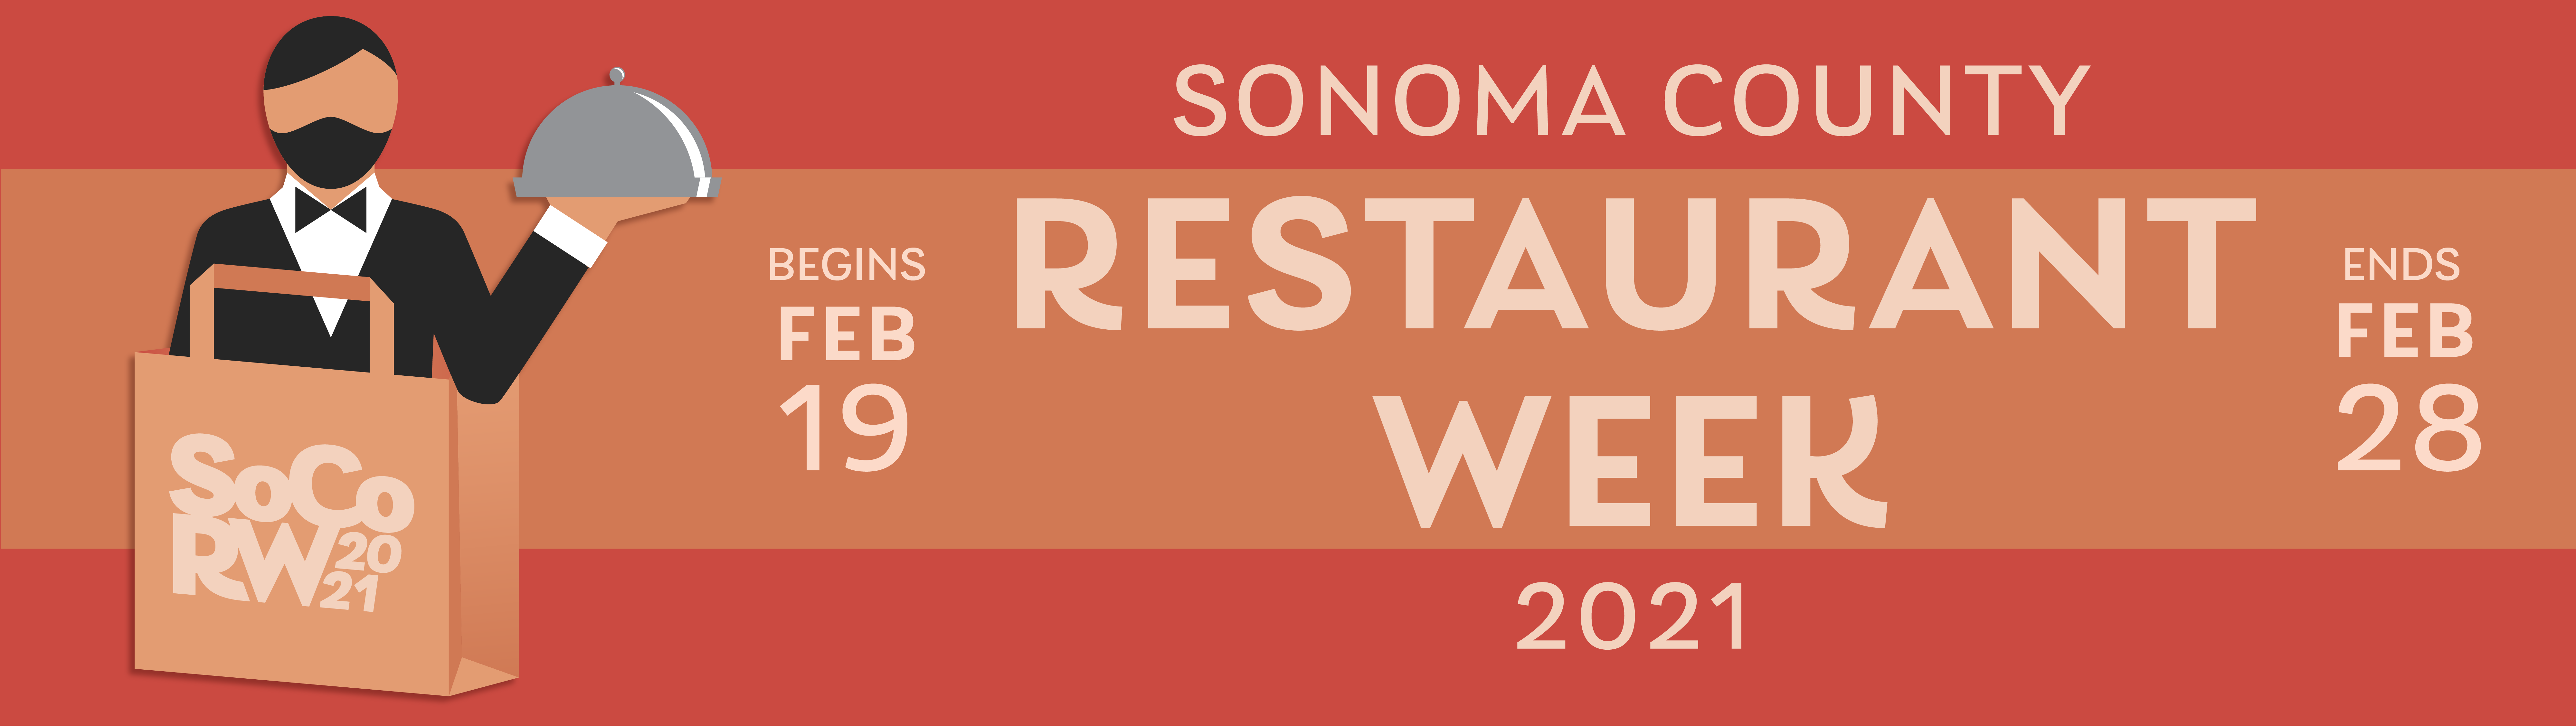 sonoma county restaurant week 2021. Begins February 19th. Ends February 28th. Restaurant week logo of waiter popping out of a take out bag.